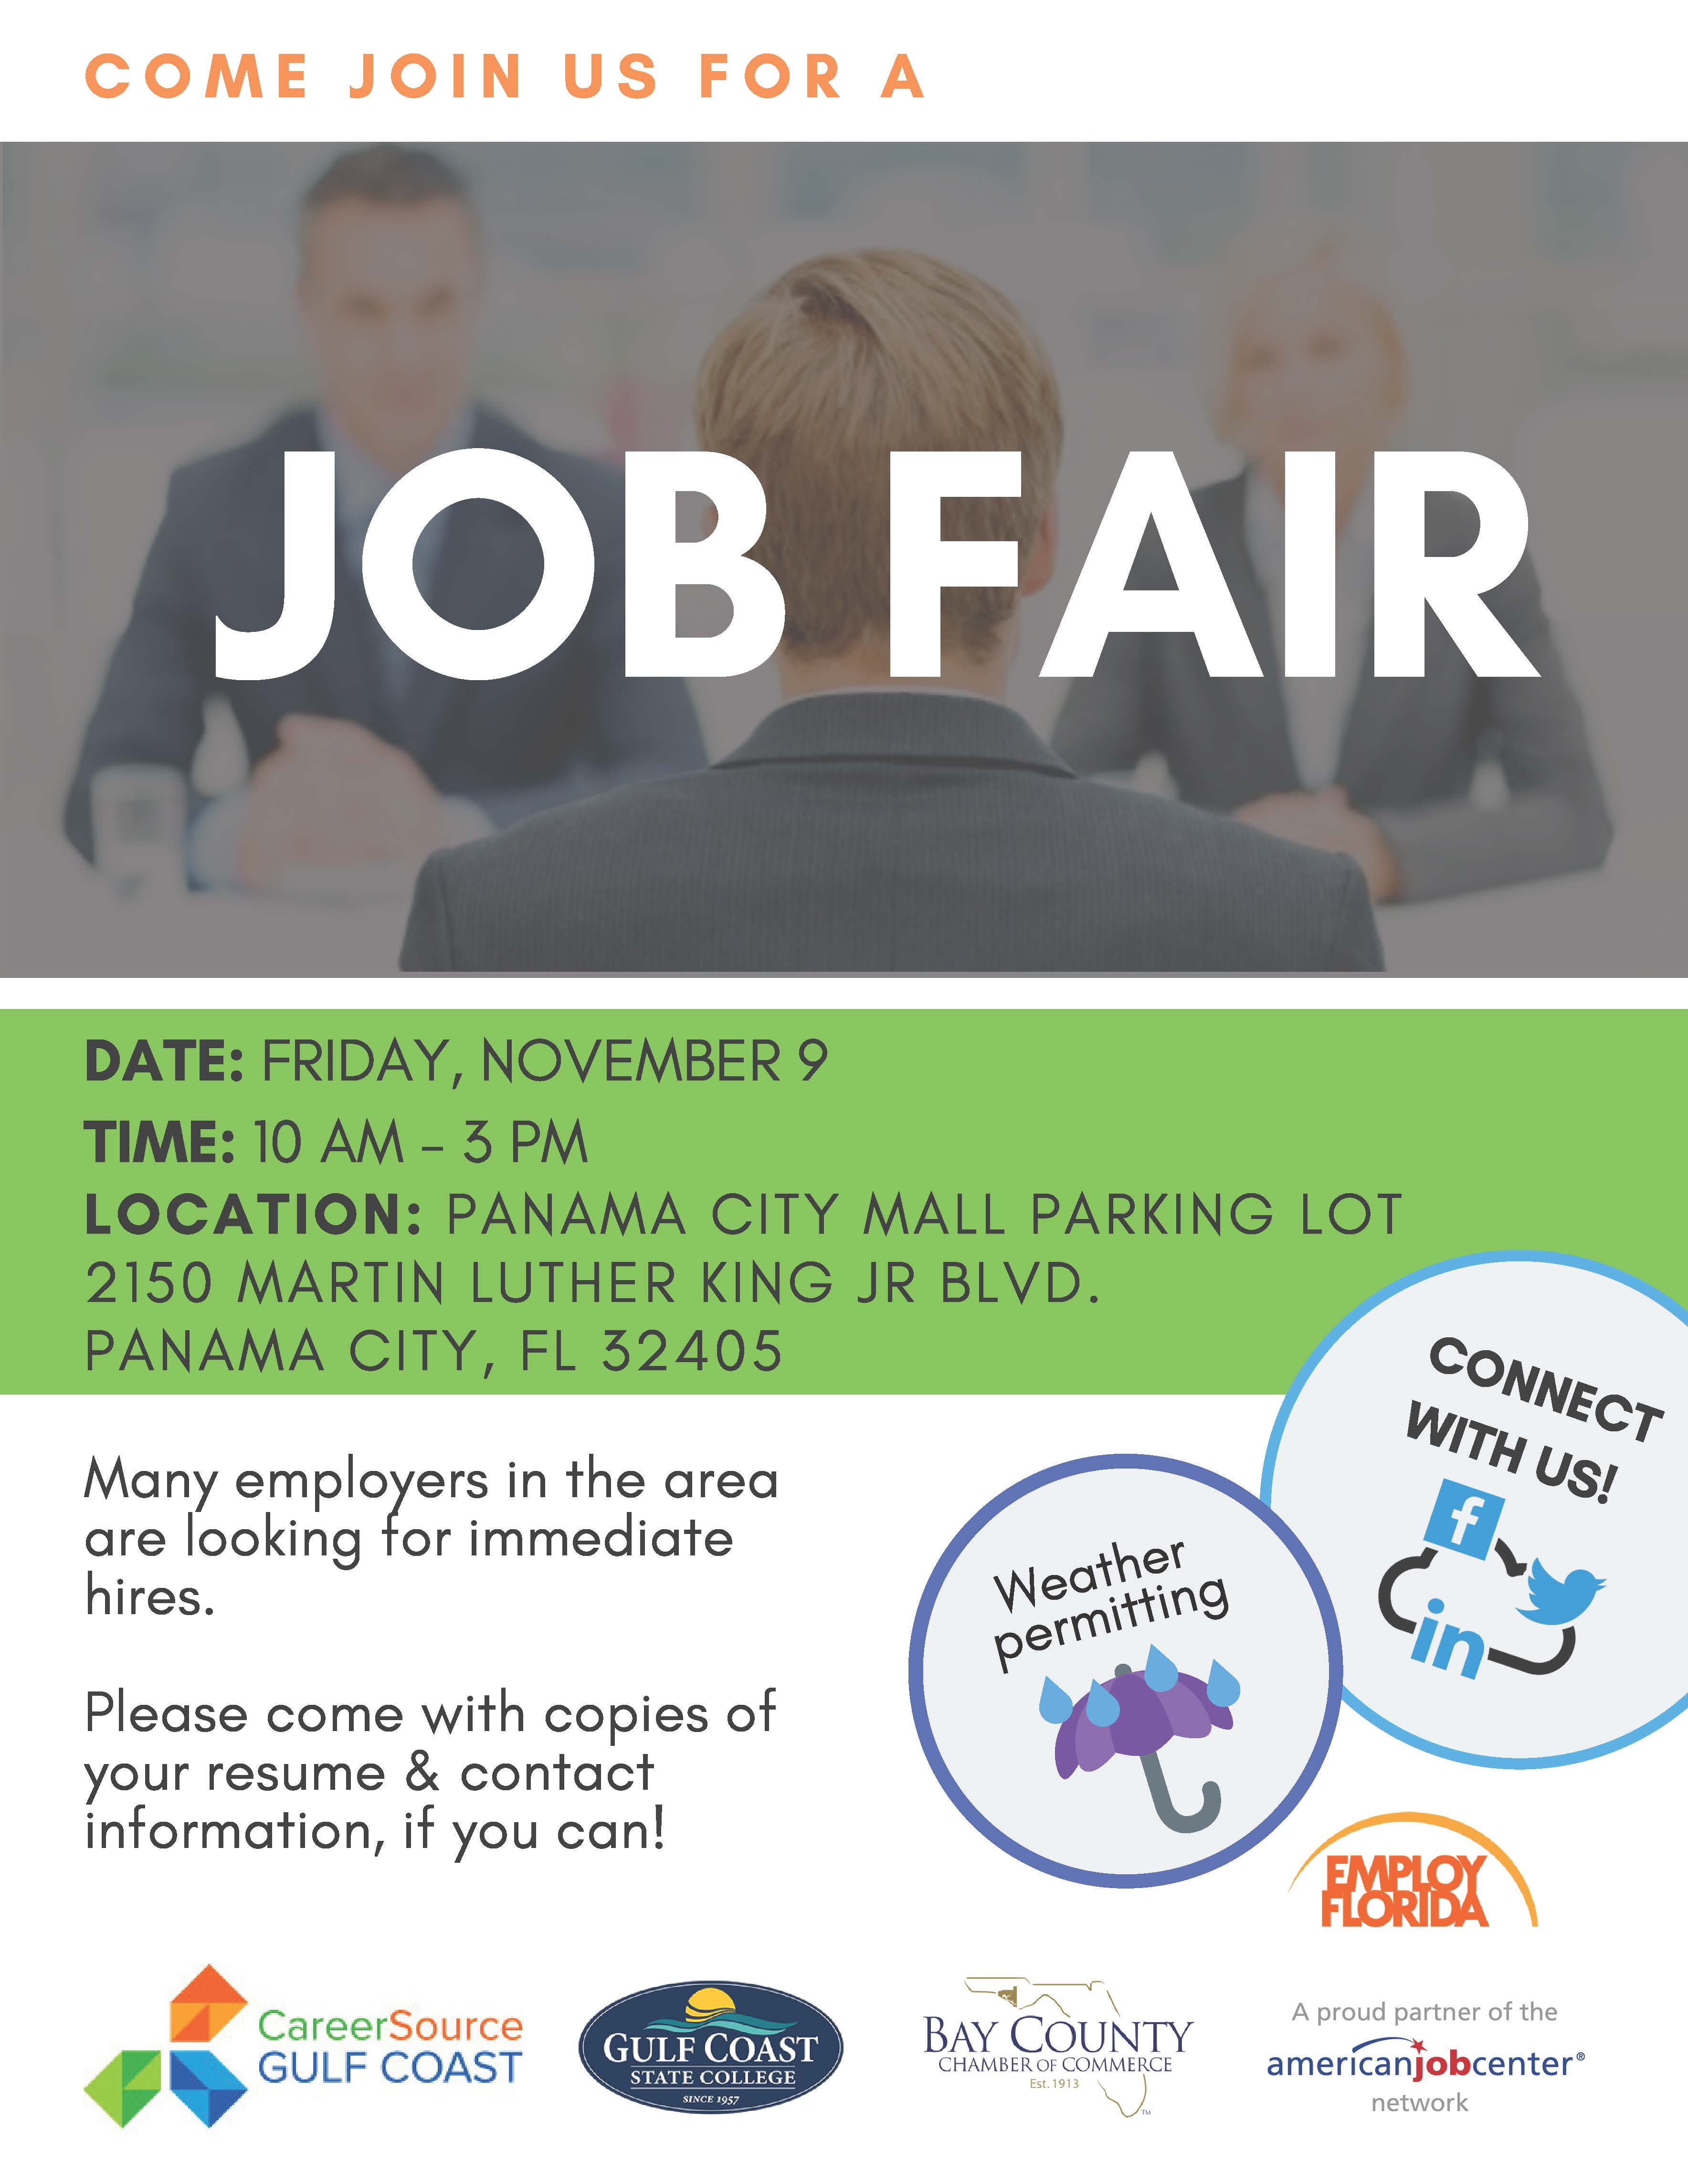 The Post Hurricane Michael Job Fair will be at the Panama City Mall on November 9th from 10 am to 3 pm.